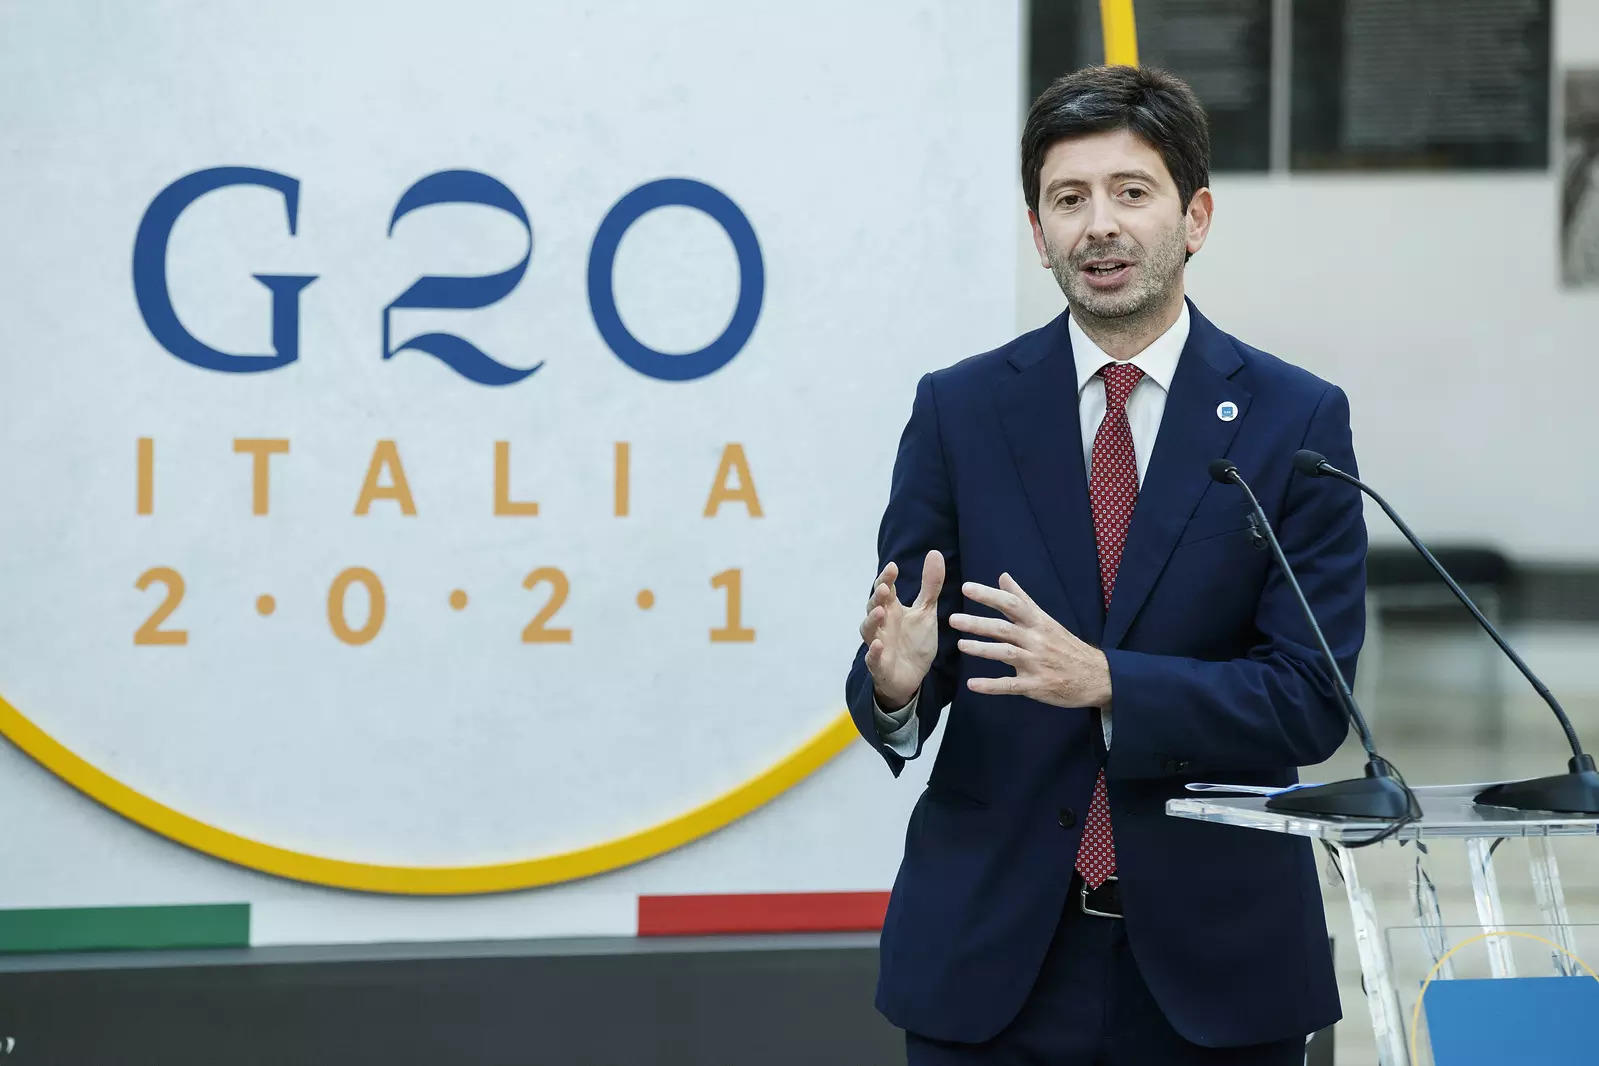 G20 health ministers agree on vaccine confidence measures